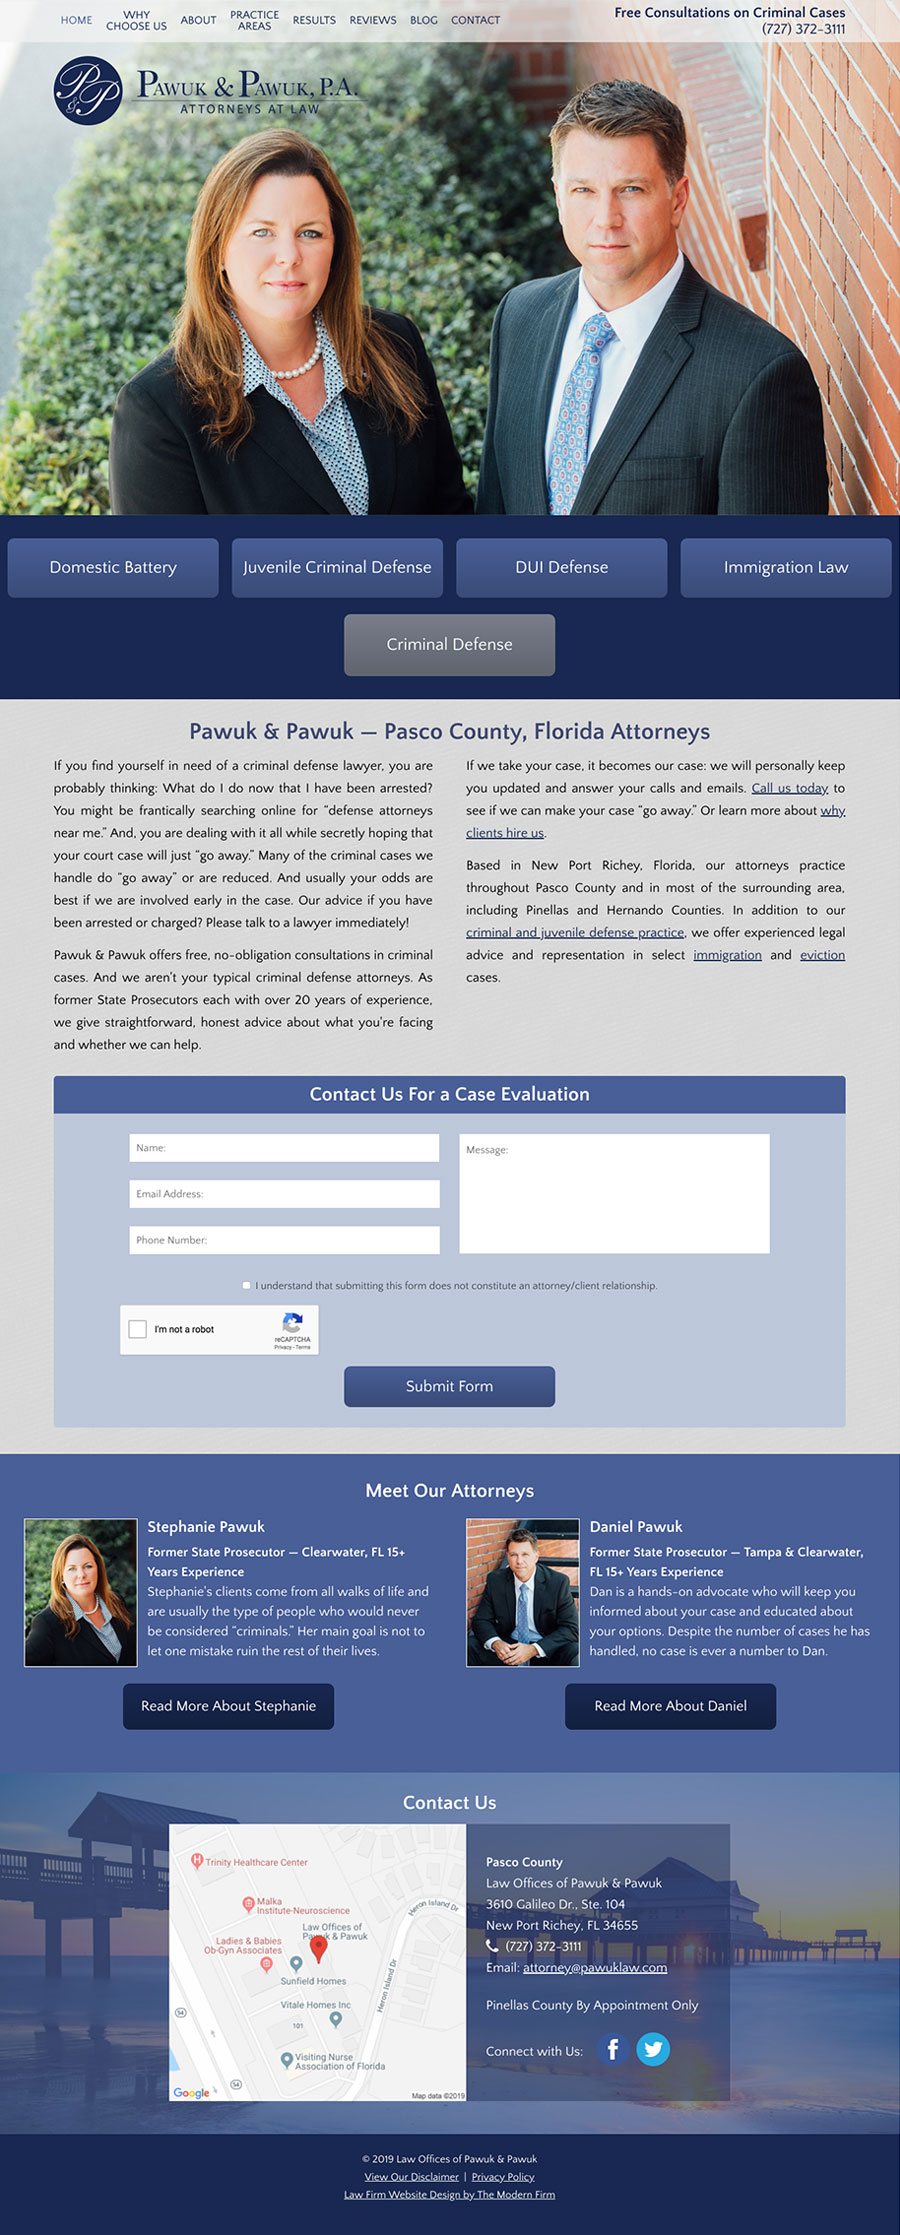 Law Firm Website Design for Law Offices of Pawuk & Pawuk